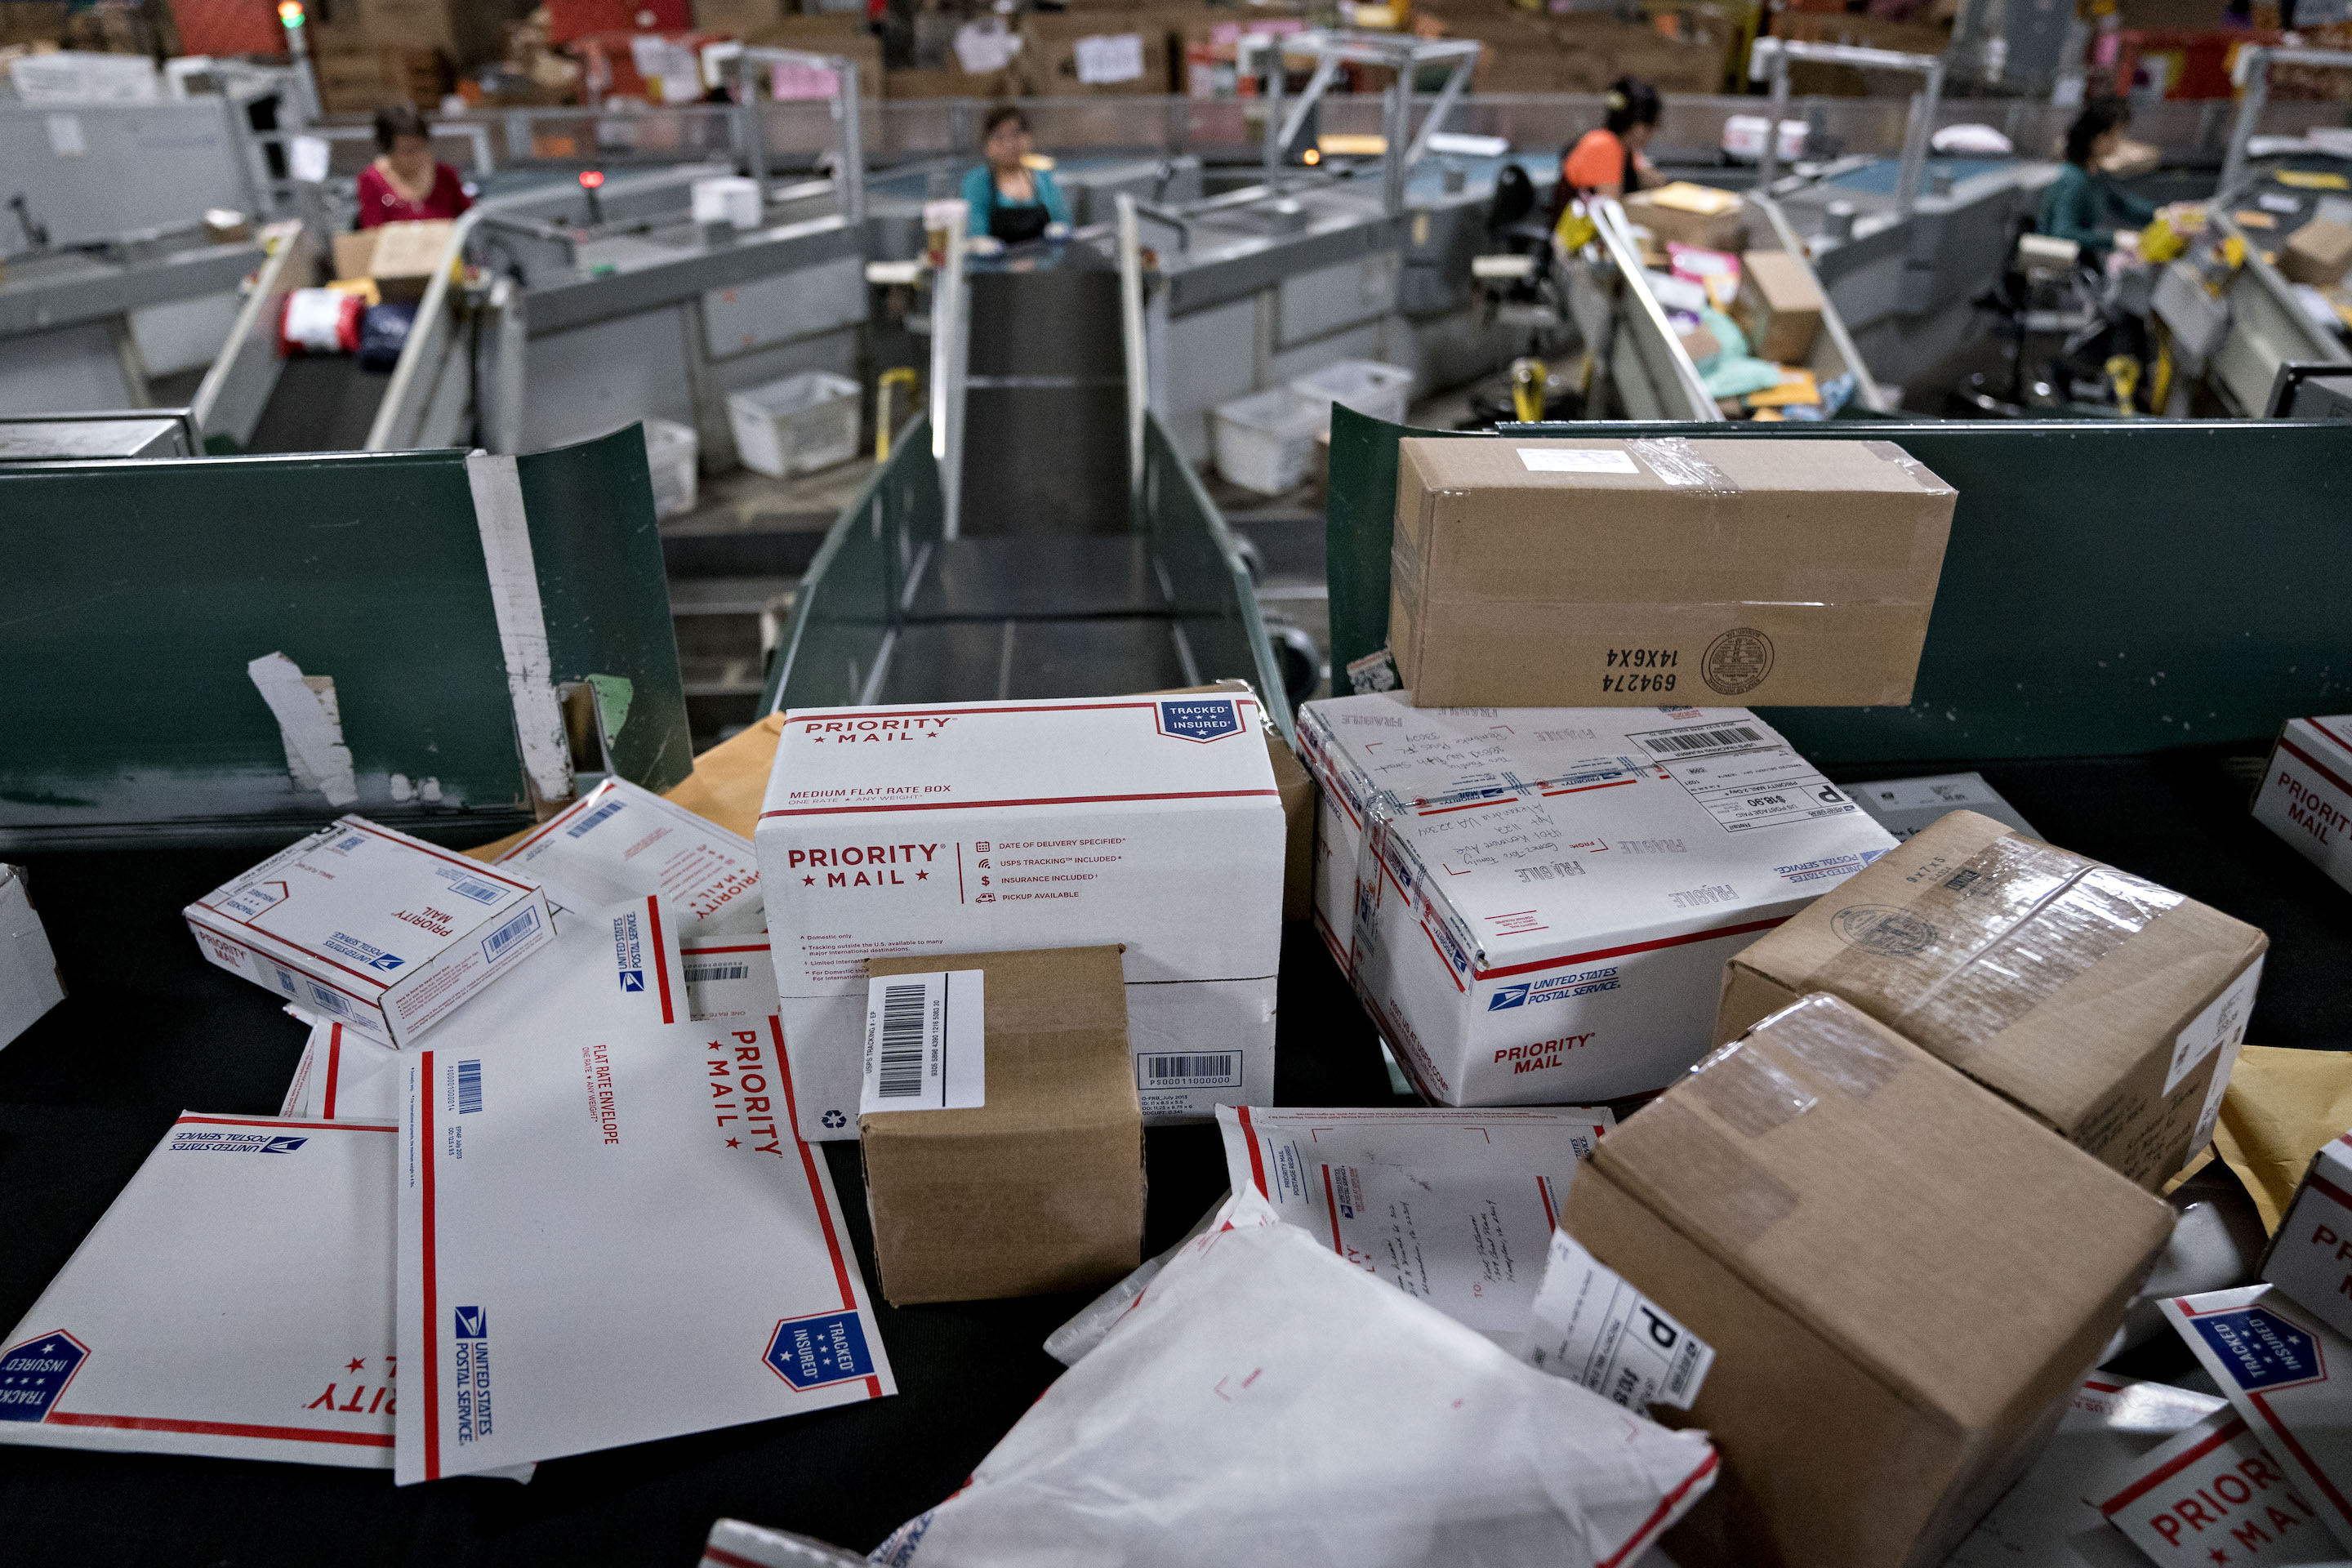 President Trump threatens to withdraw from a global postal pact, saying foreign countries aren't reimbursing the U.S. enough on international mail deliveries.